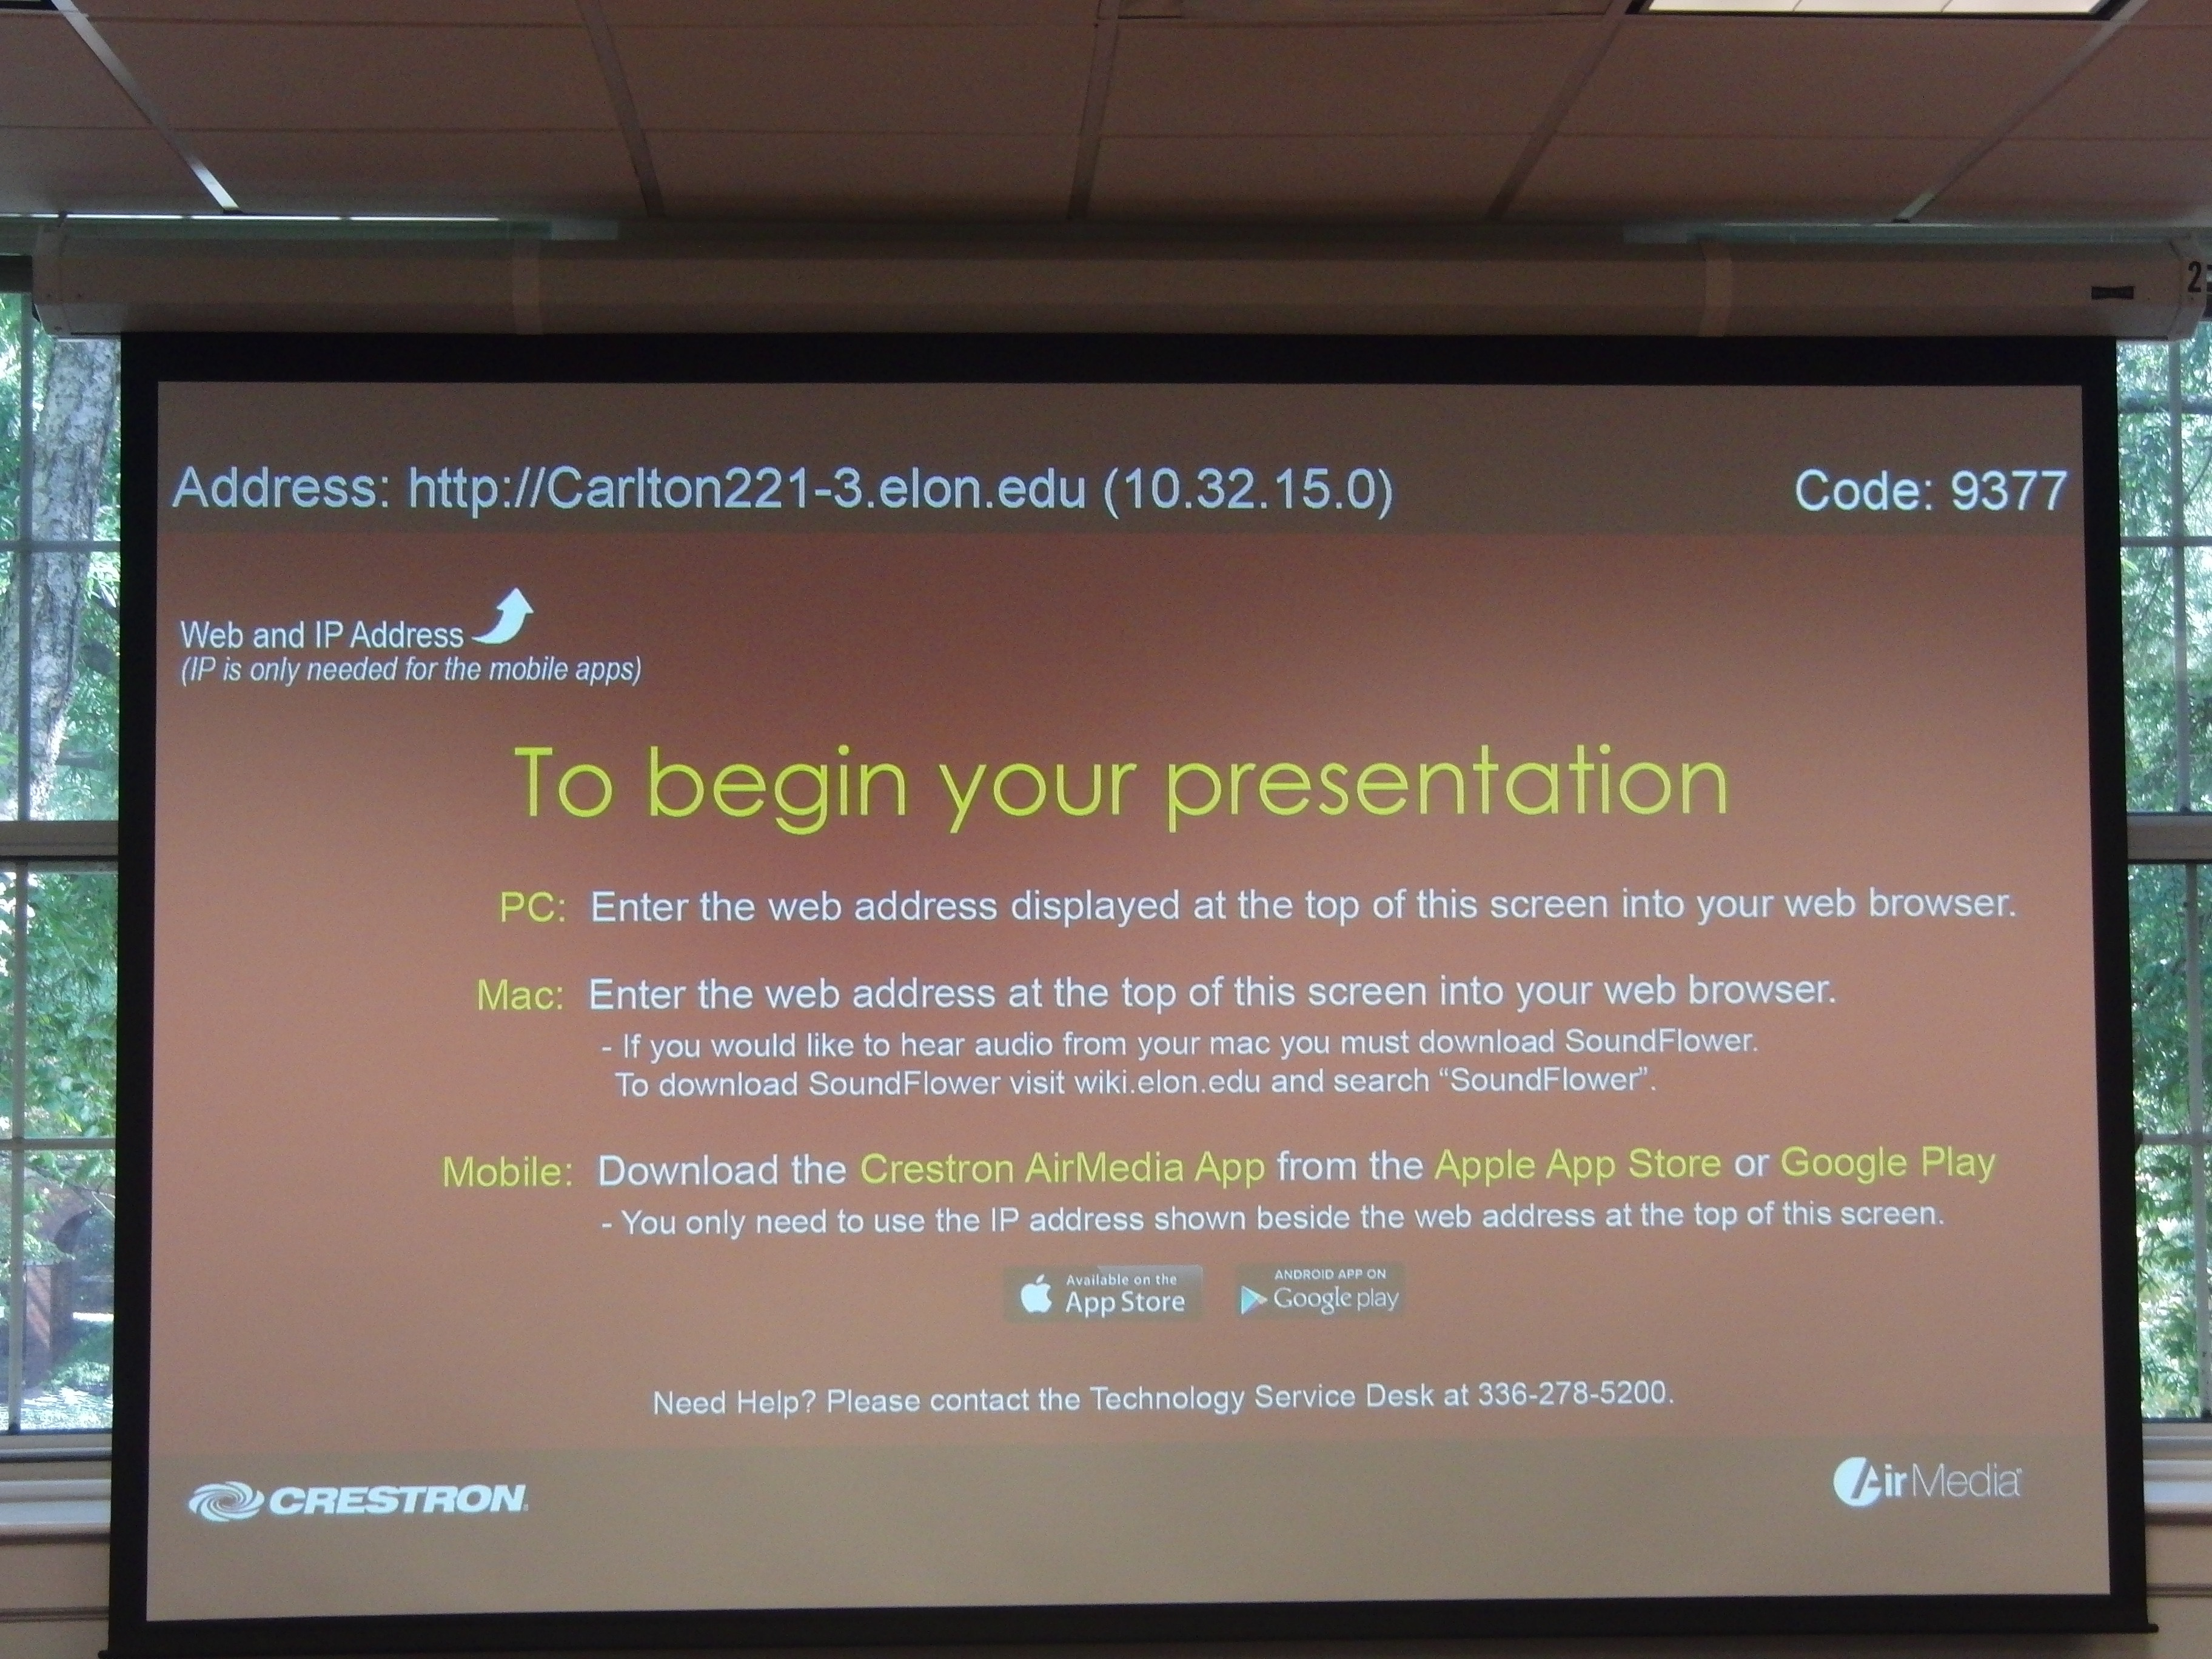 Photo of projection screen showing AirMedia information including web address and code